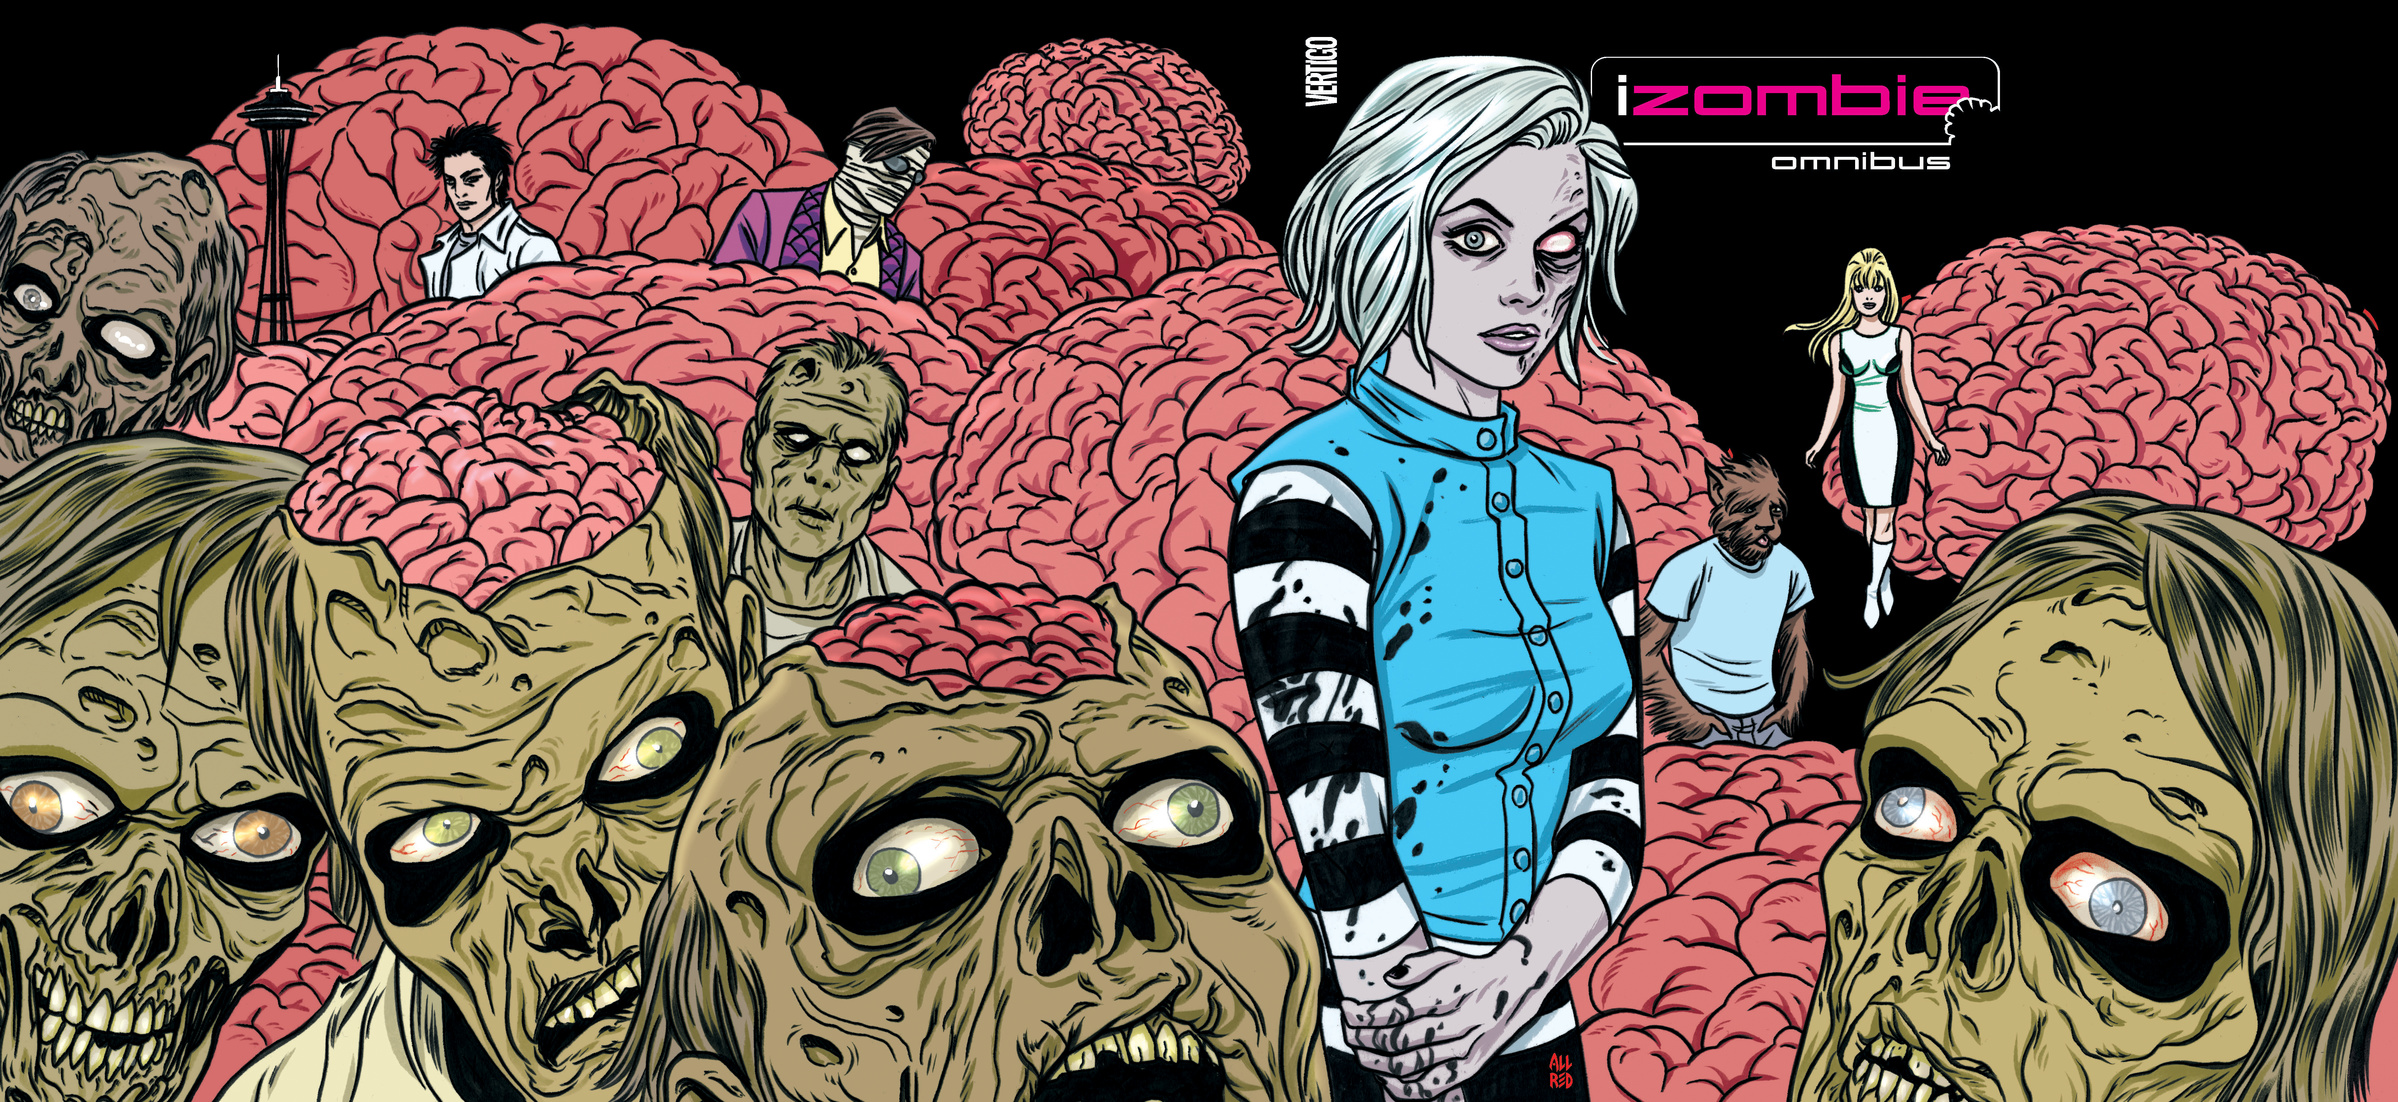 The iZombie Omnibus chris wormell george and the dragon